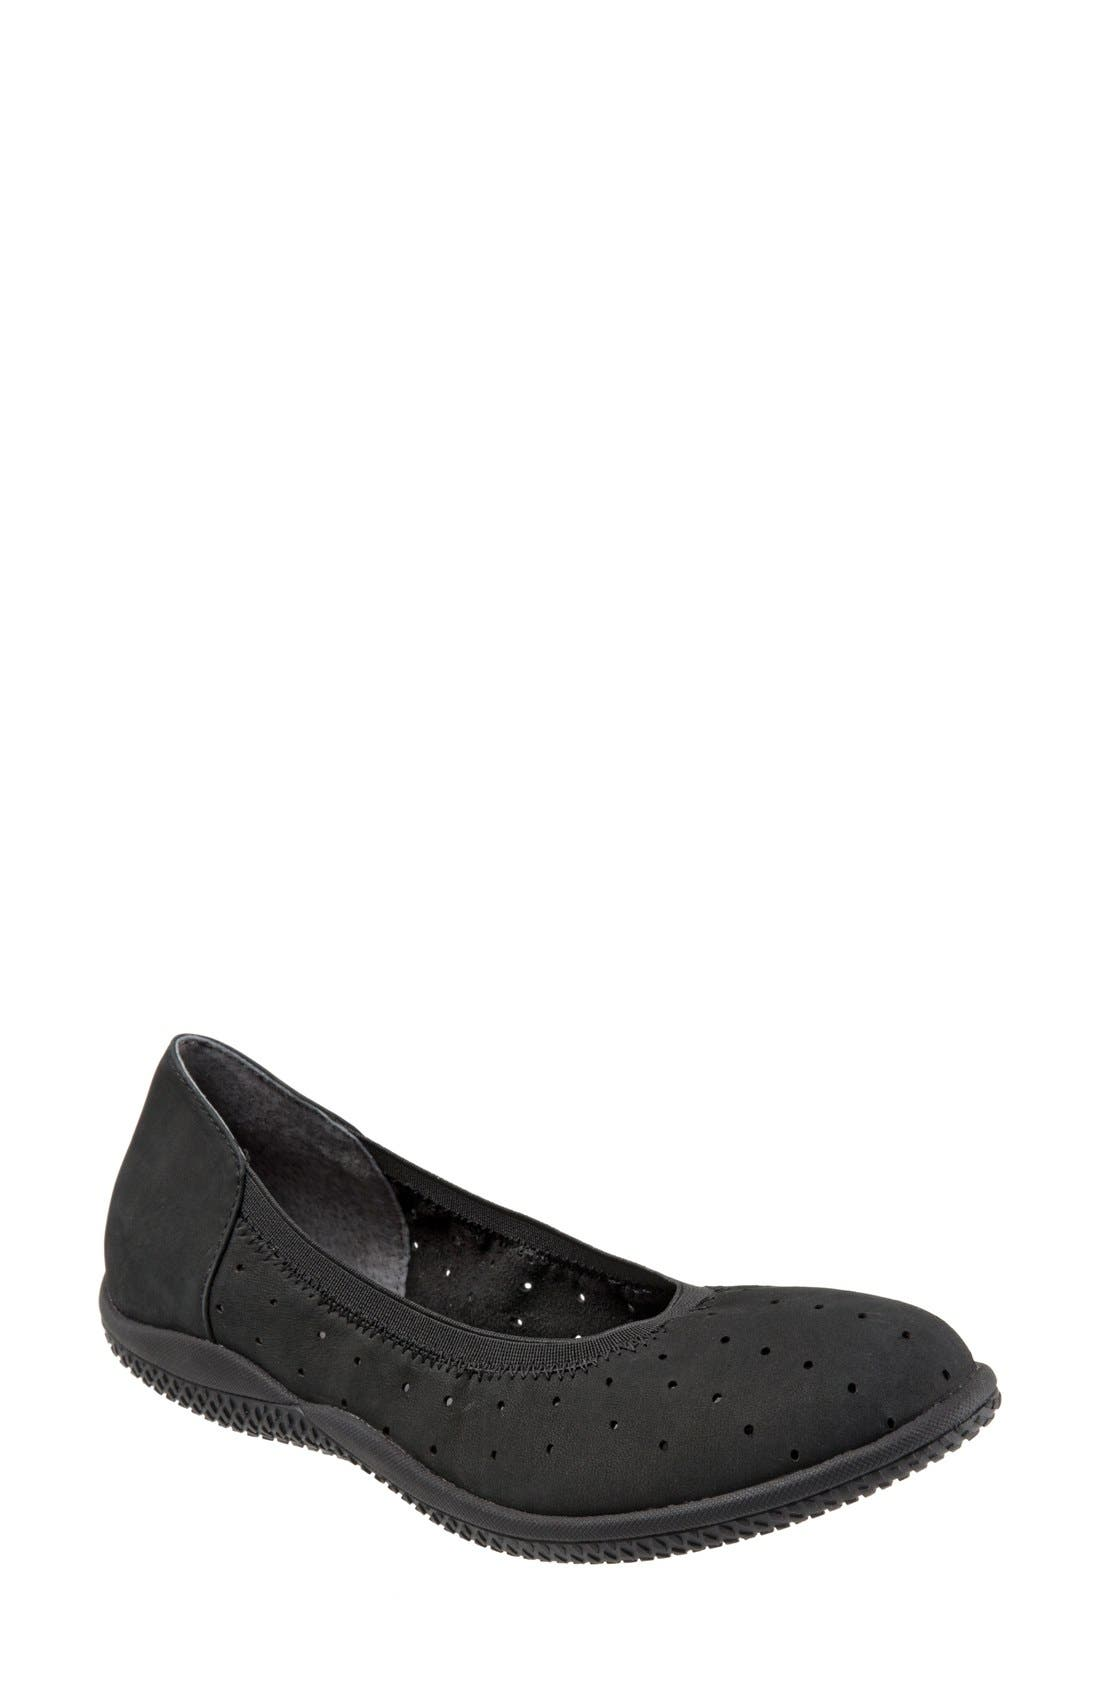 'Hampshire' Dot Perforated Ballet Flat,                         Main,                         color, Black Nubuck